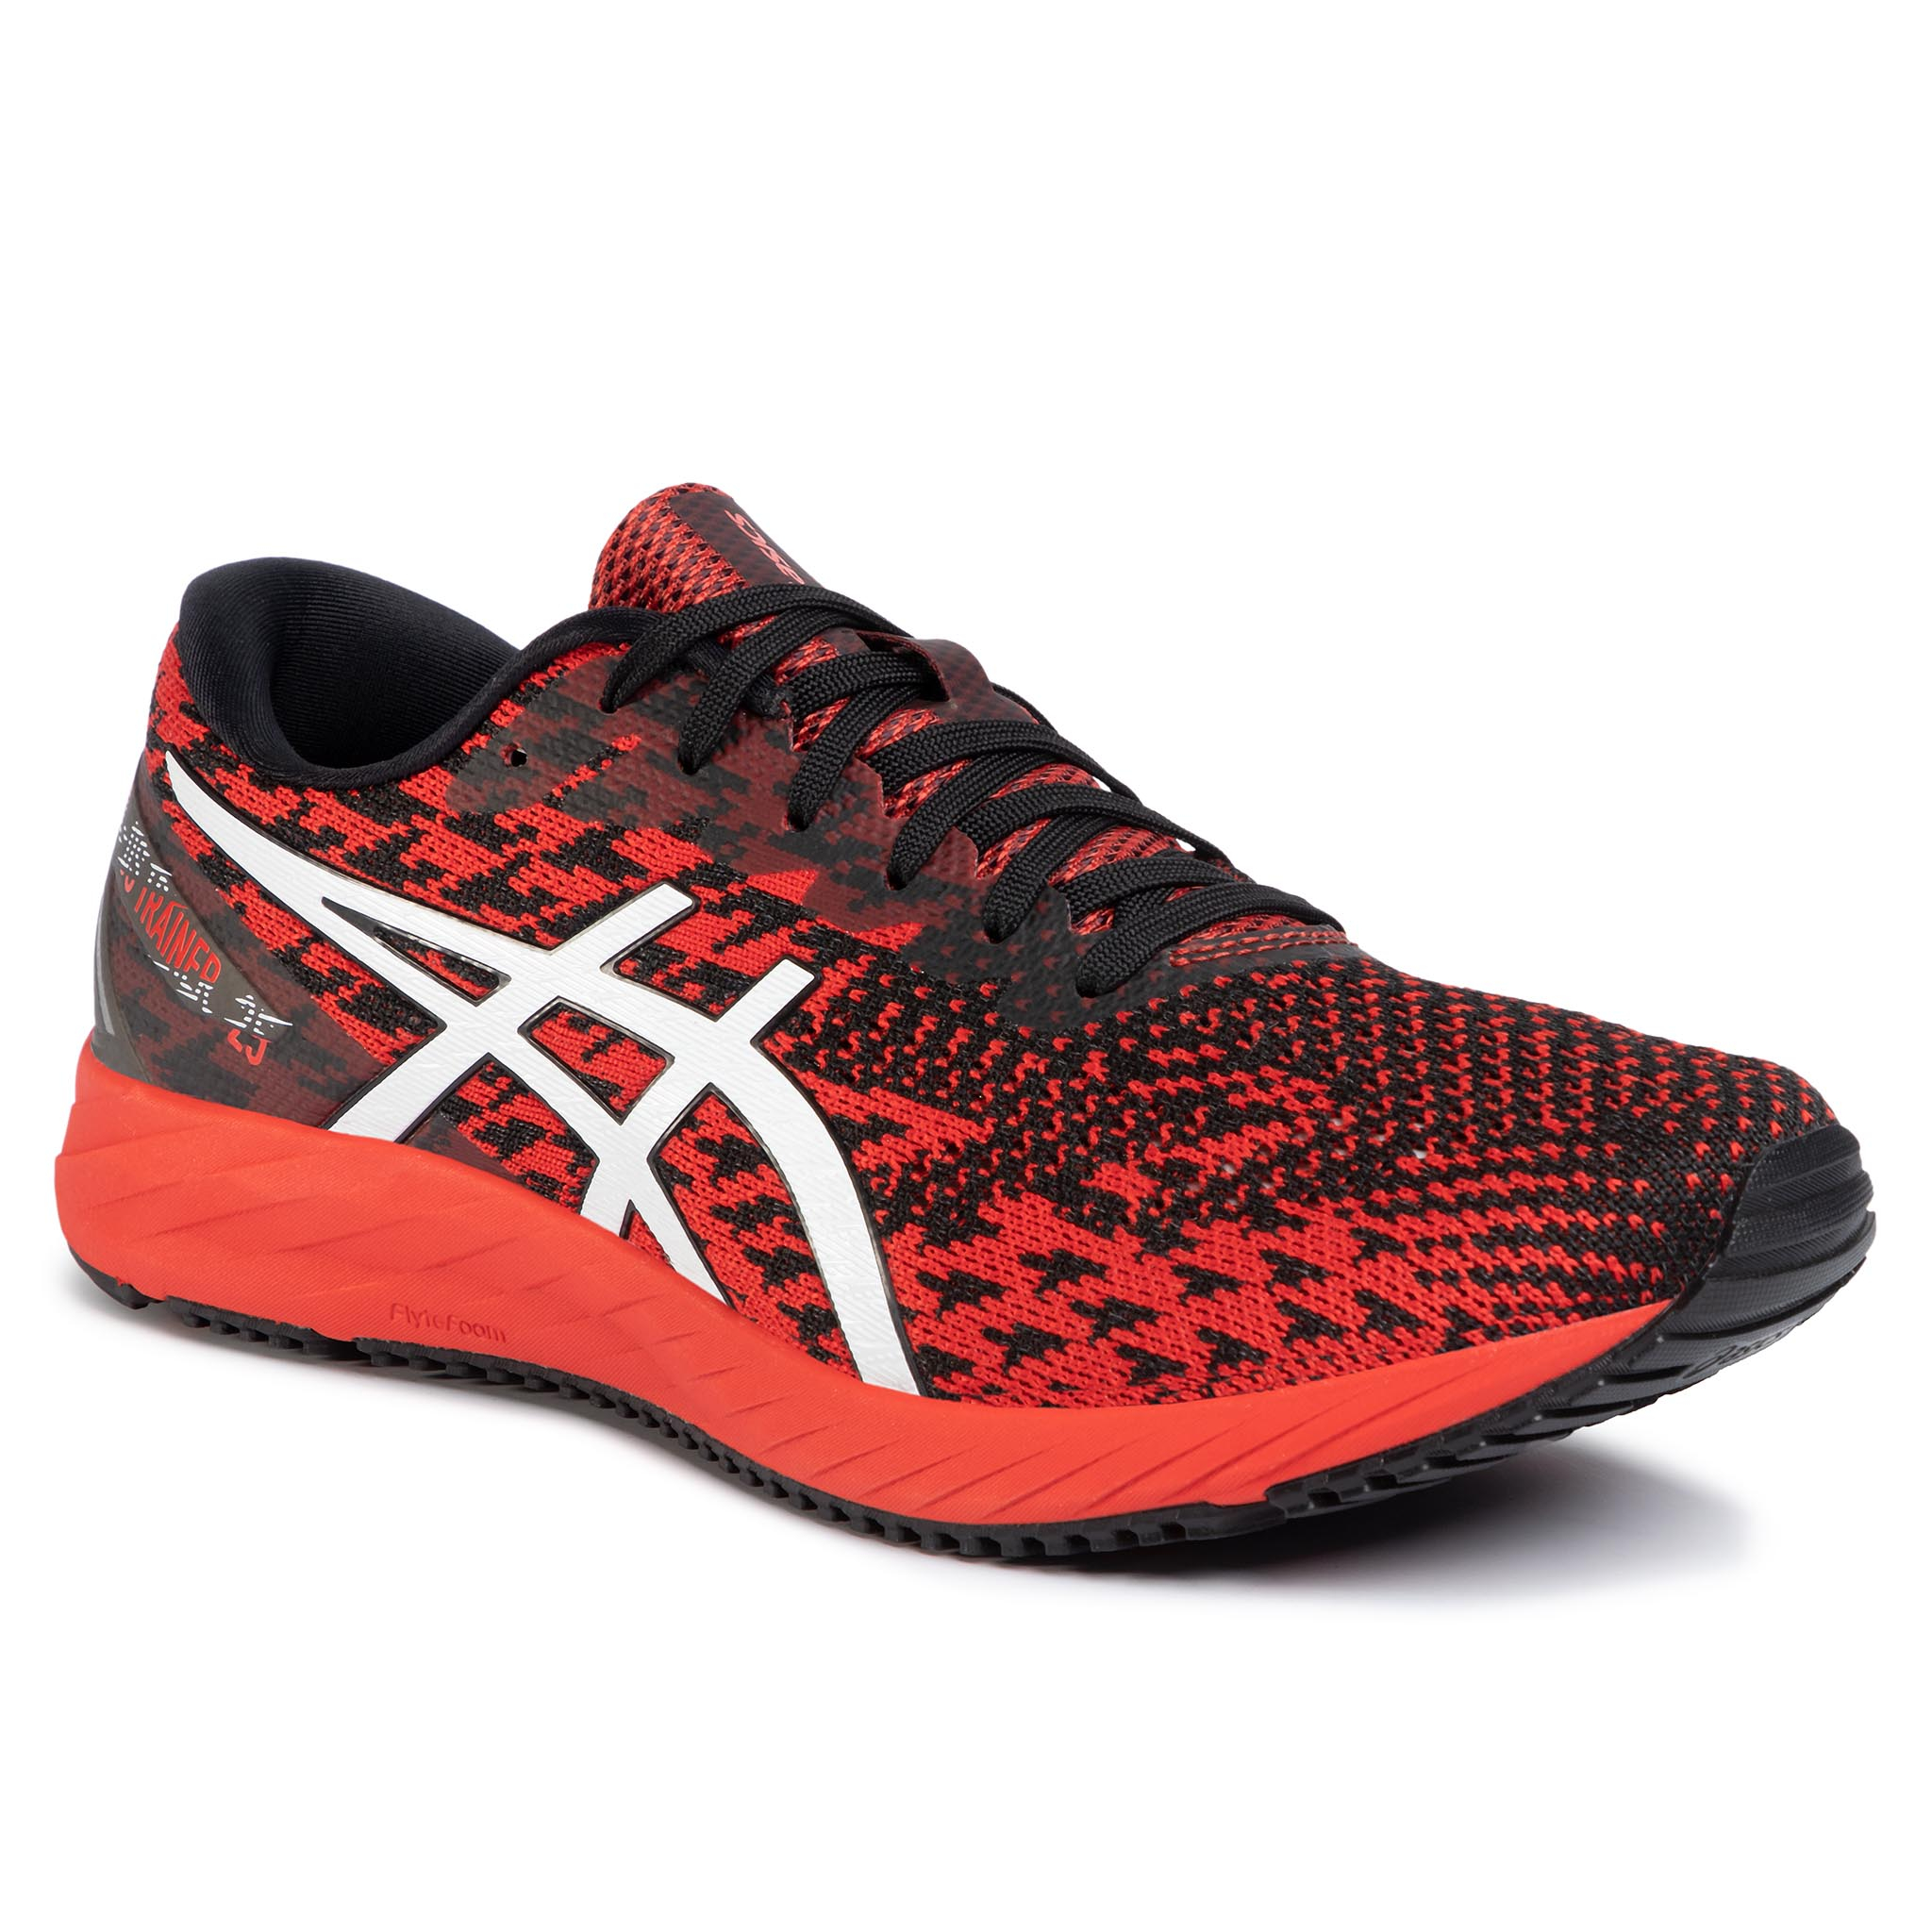 Pantofi ASICS - Gel-Ds Trainer 25 1011A675 Fiery Red/White 600